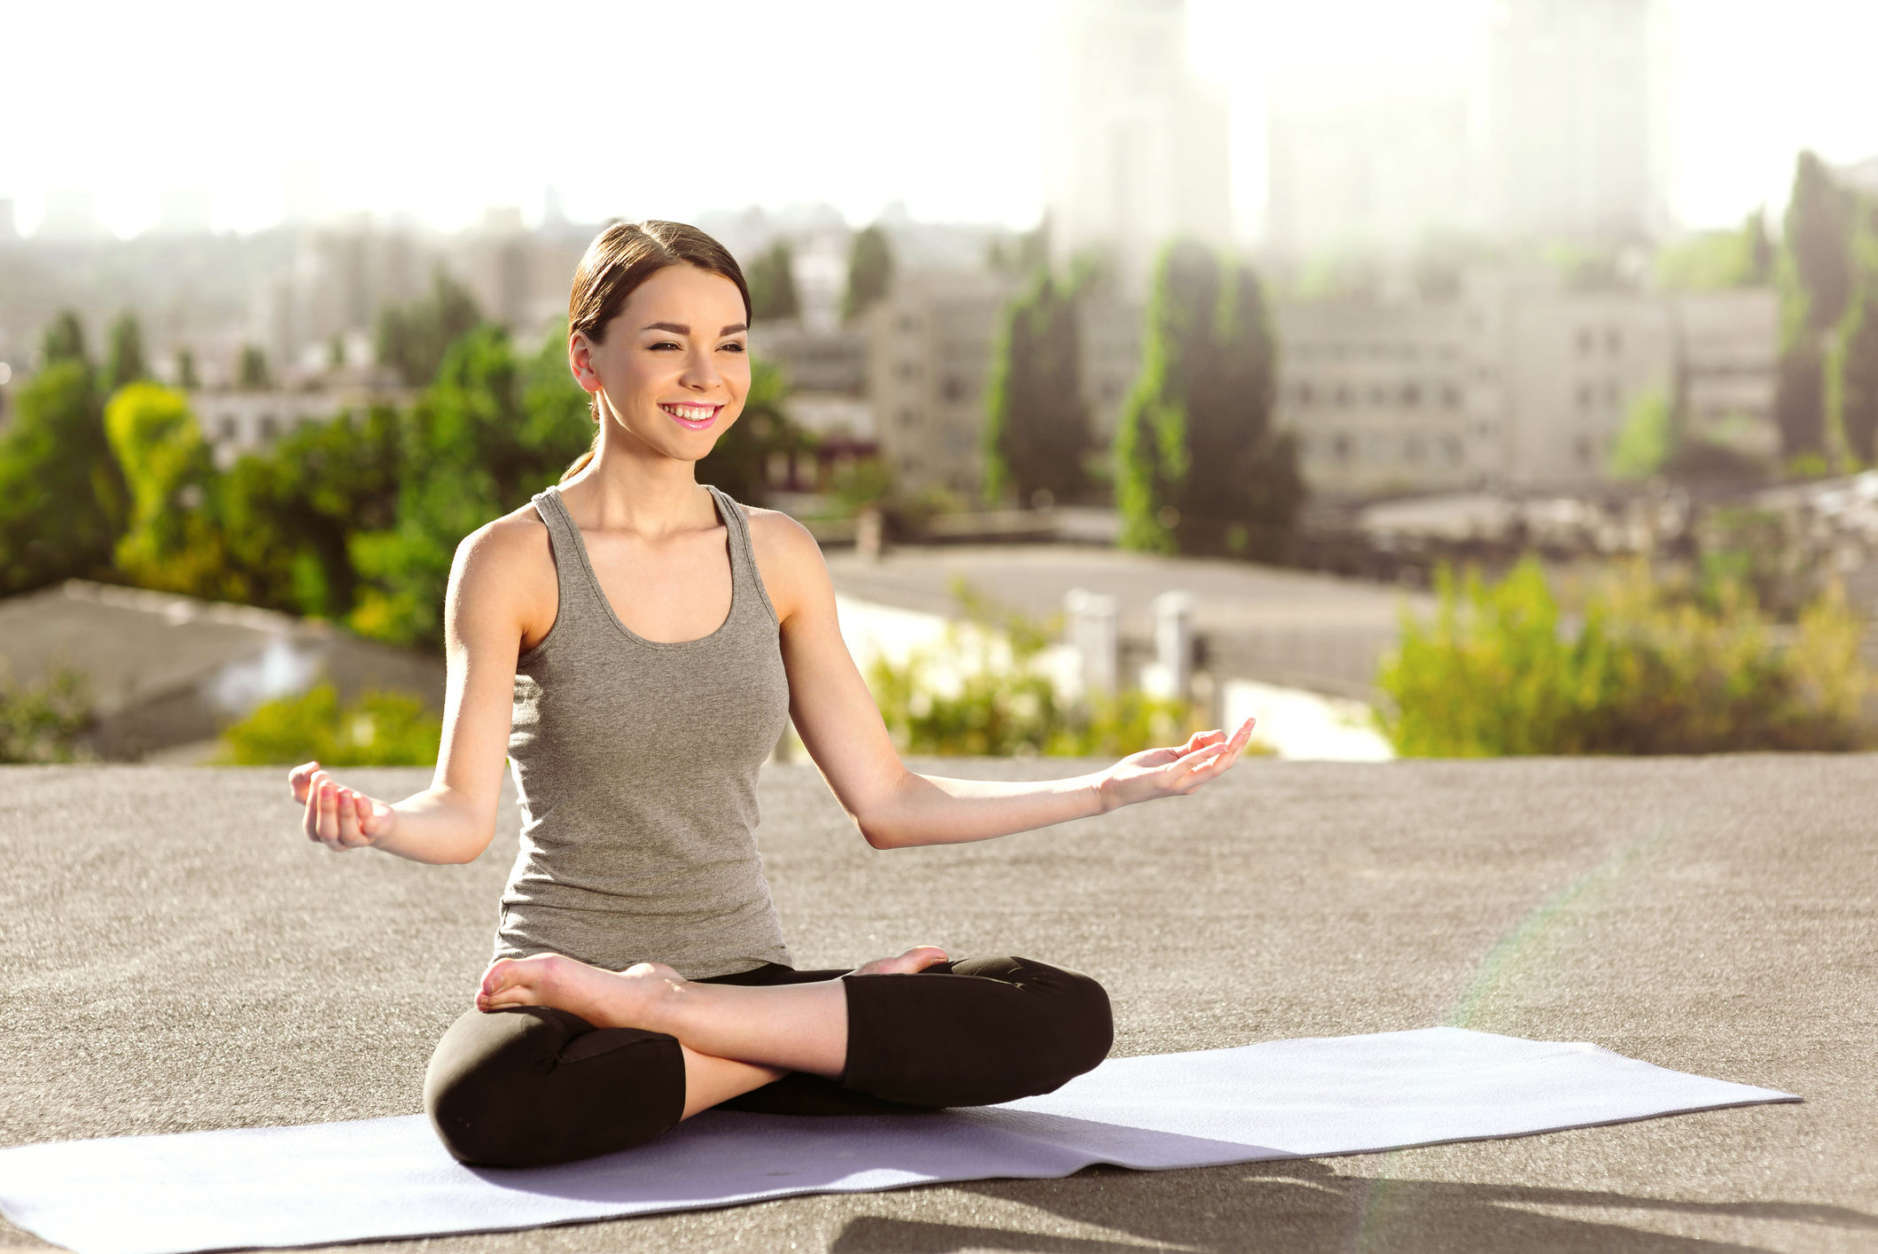 Squires said there are estimates that nearly 2.5 million people in the U.S. and about 250-million people worldwide are actively practicing Tai Chi. And health experts are starting to notice health benefits. (Thinkstock)